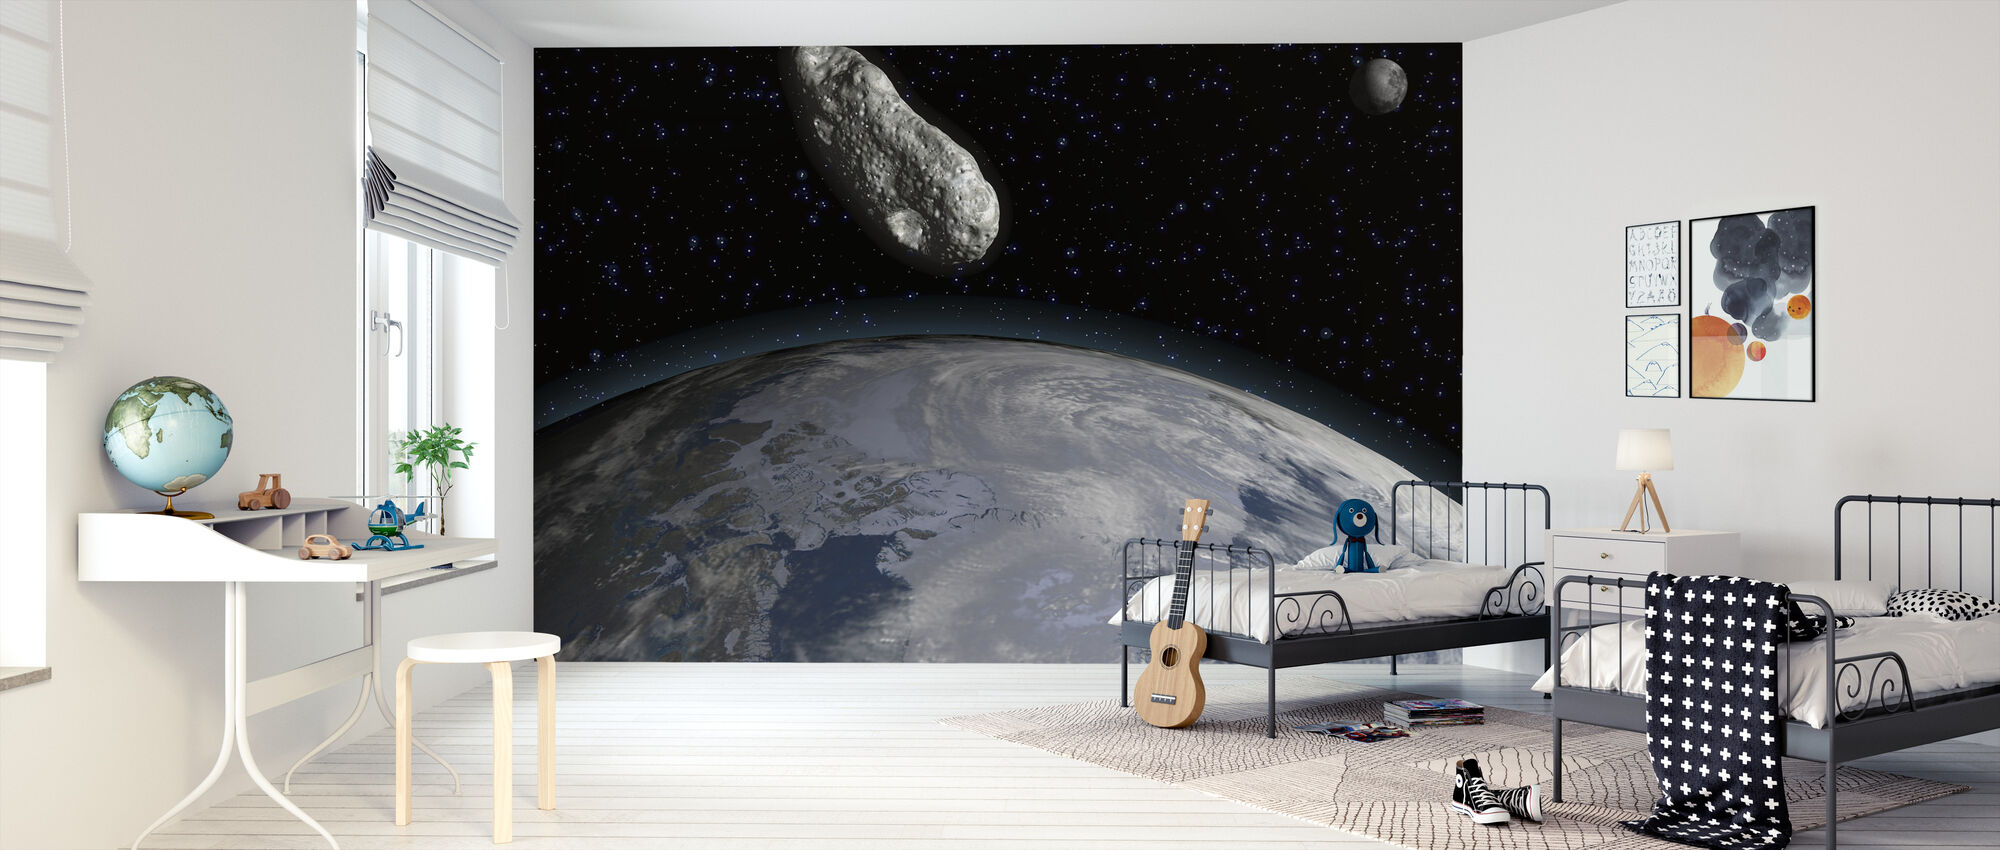 Asteroid and Planet Earth - Wallpaper - Kids Room